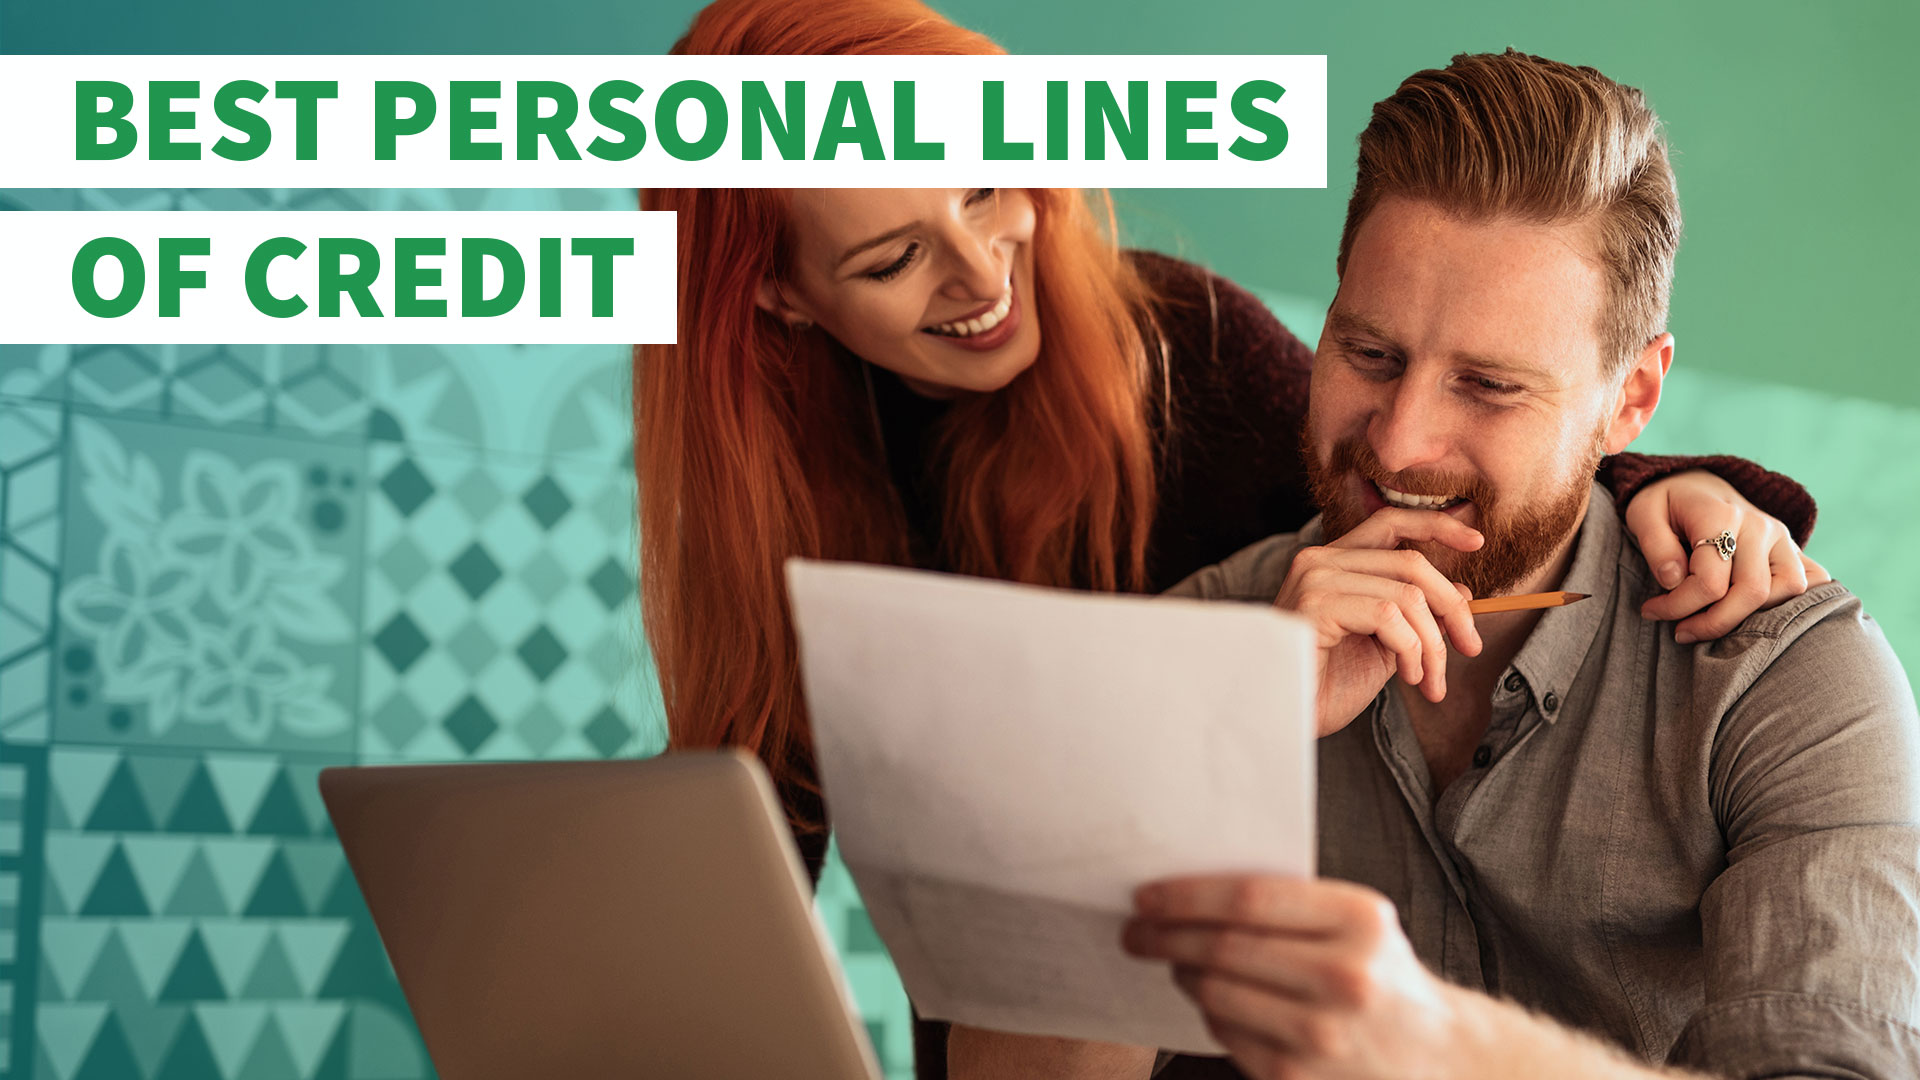 9 Best Personal Lines of Credit GOBankingRates